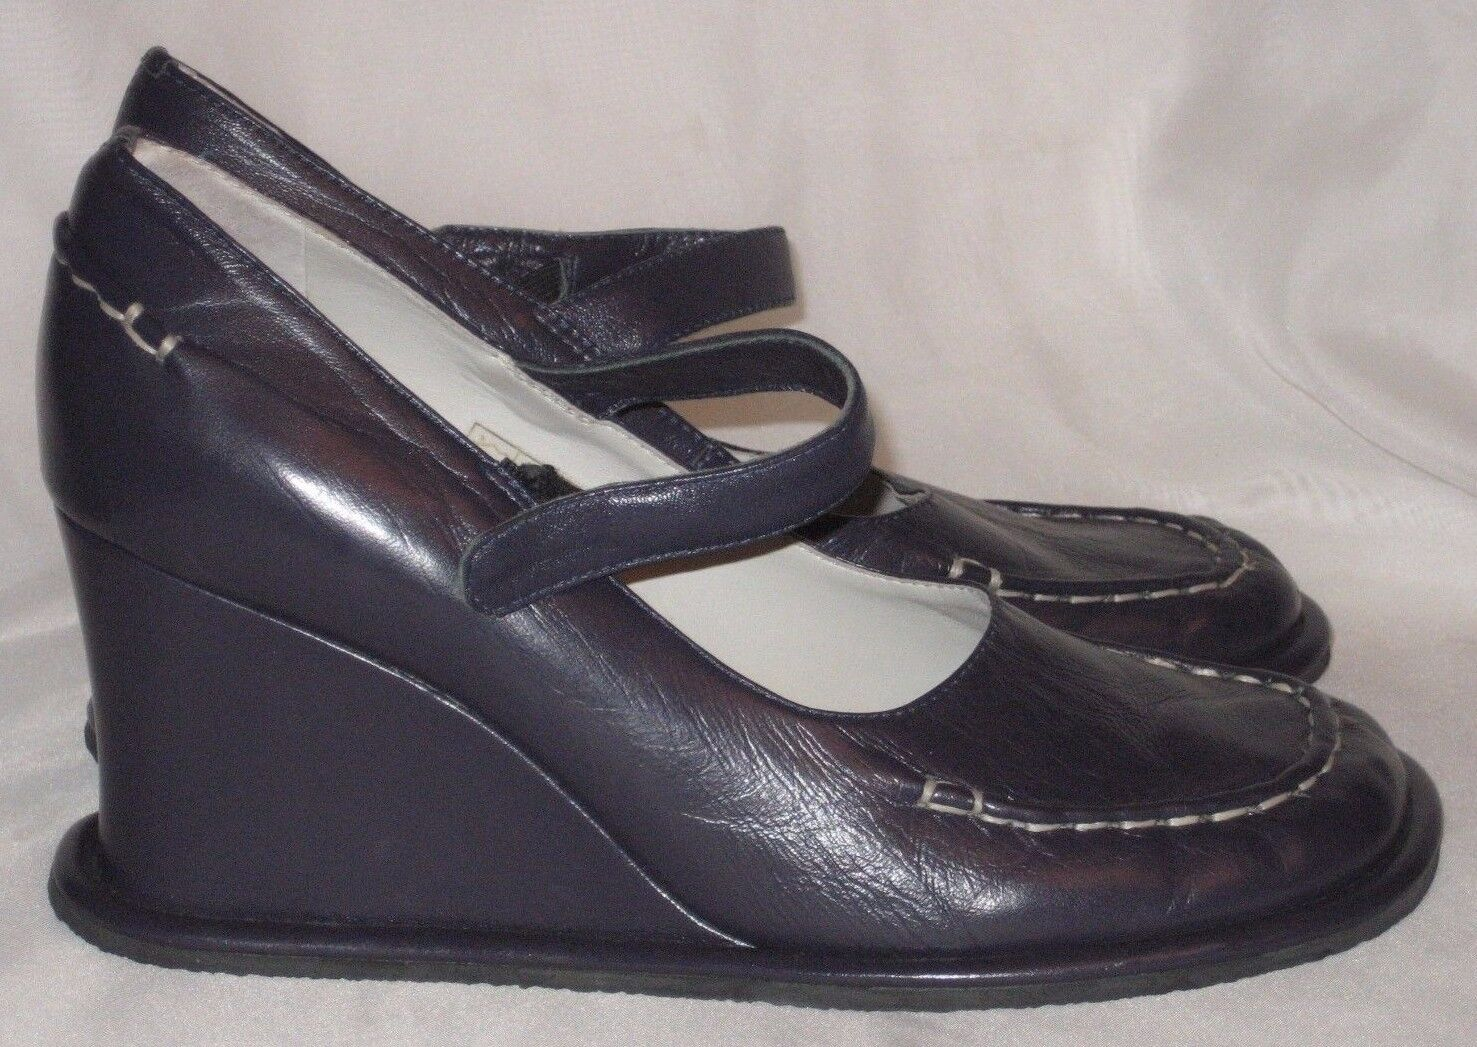 KAJU by A.G. Giraudon Eggplant Leather Mary Janes Sz 37 EU Excellent Condition